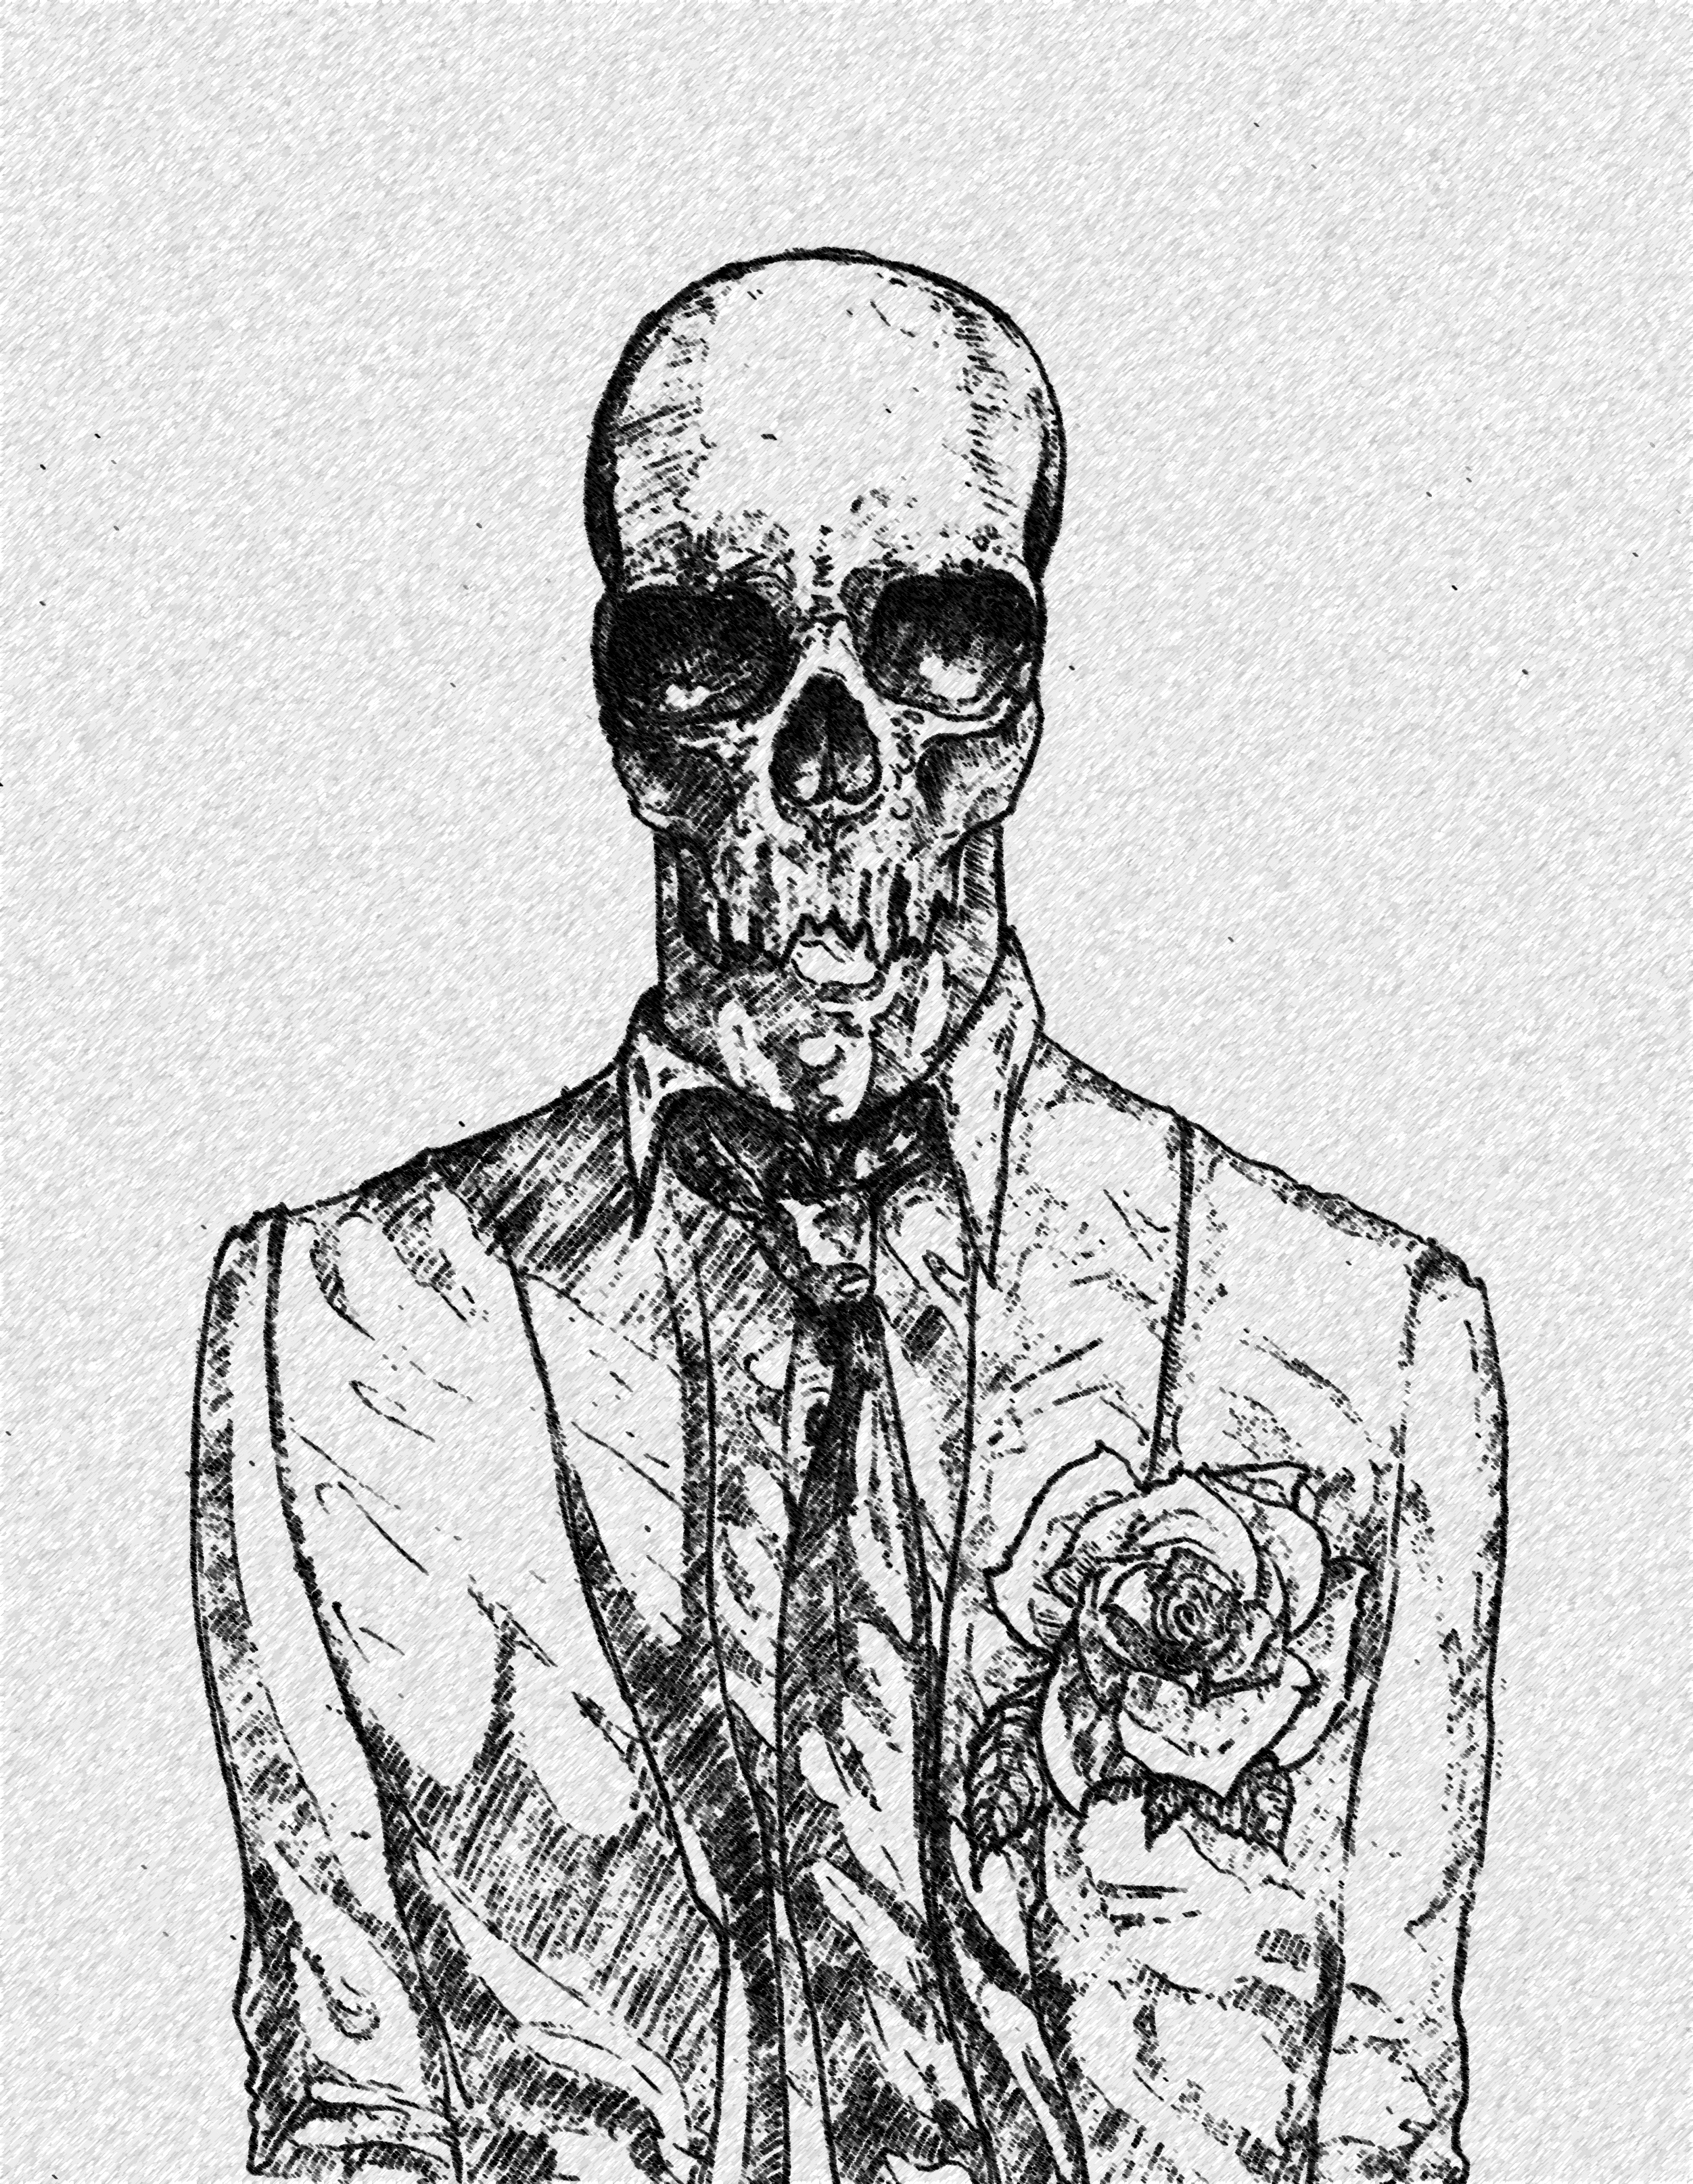 Skull in a Suit